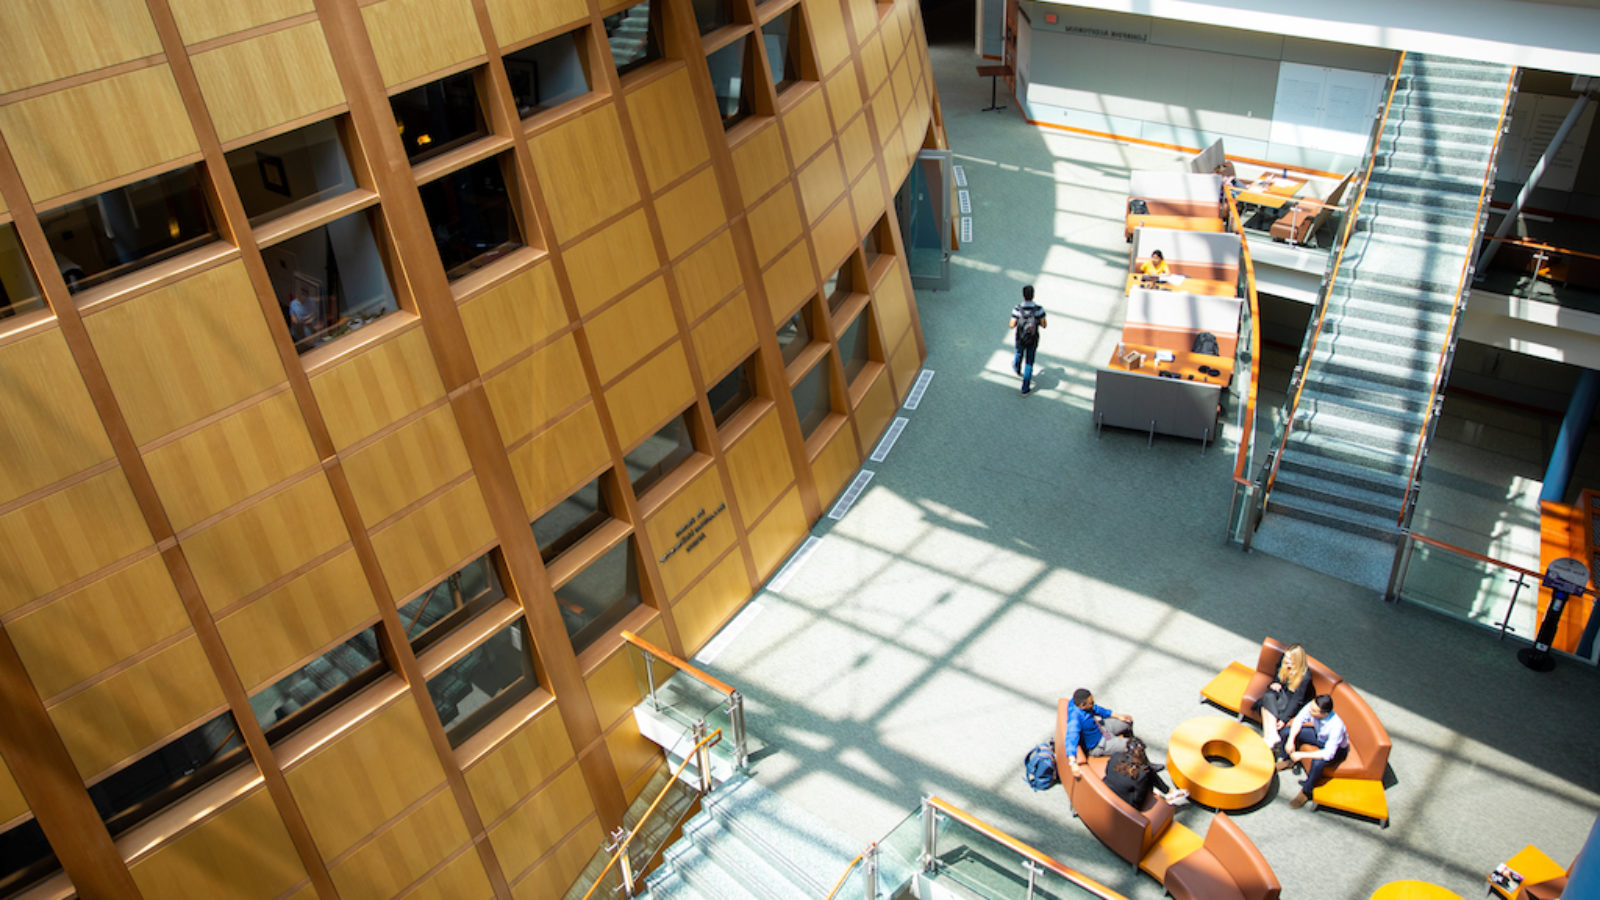 Image displays an aerial view of the inside of the McDonough School of Business